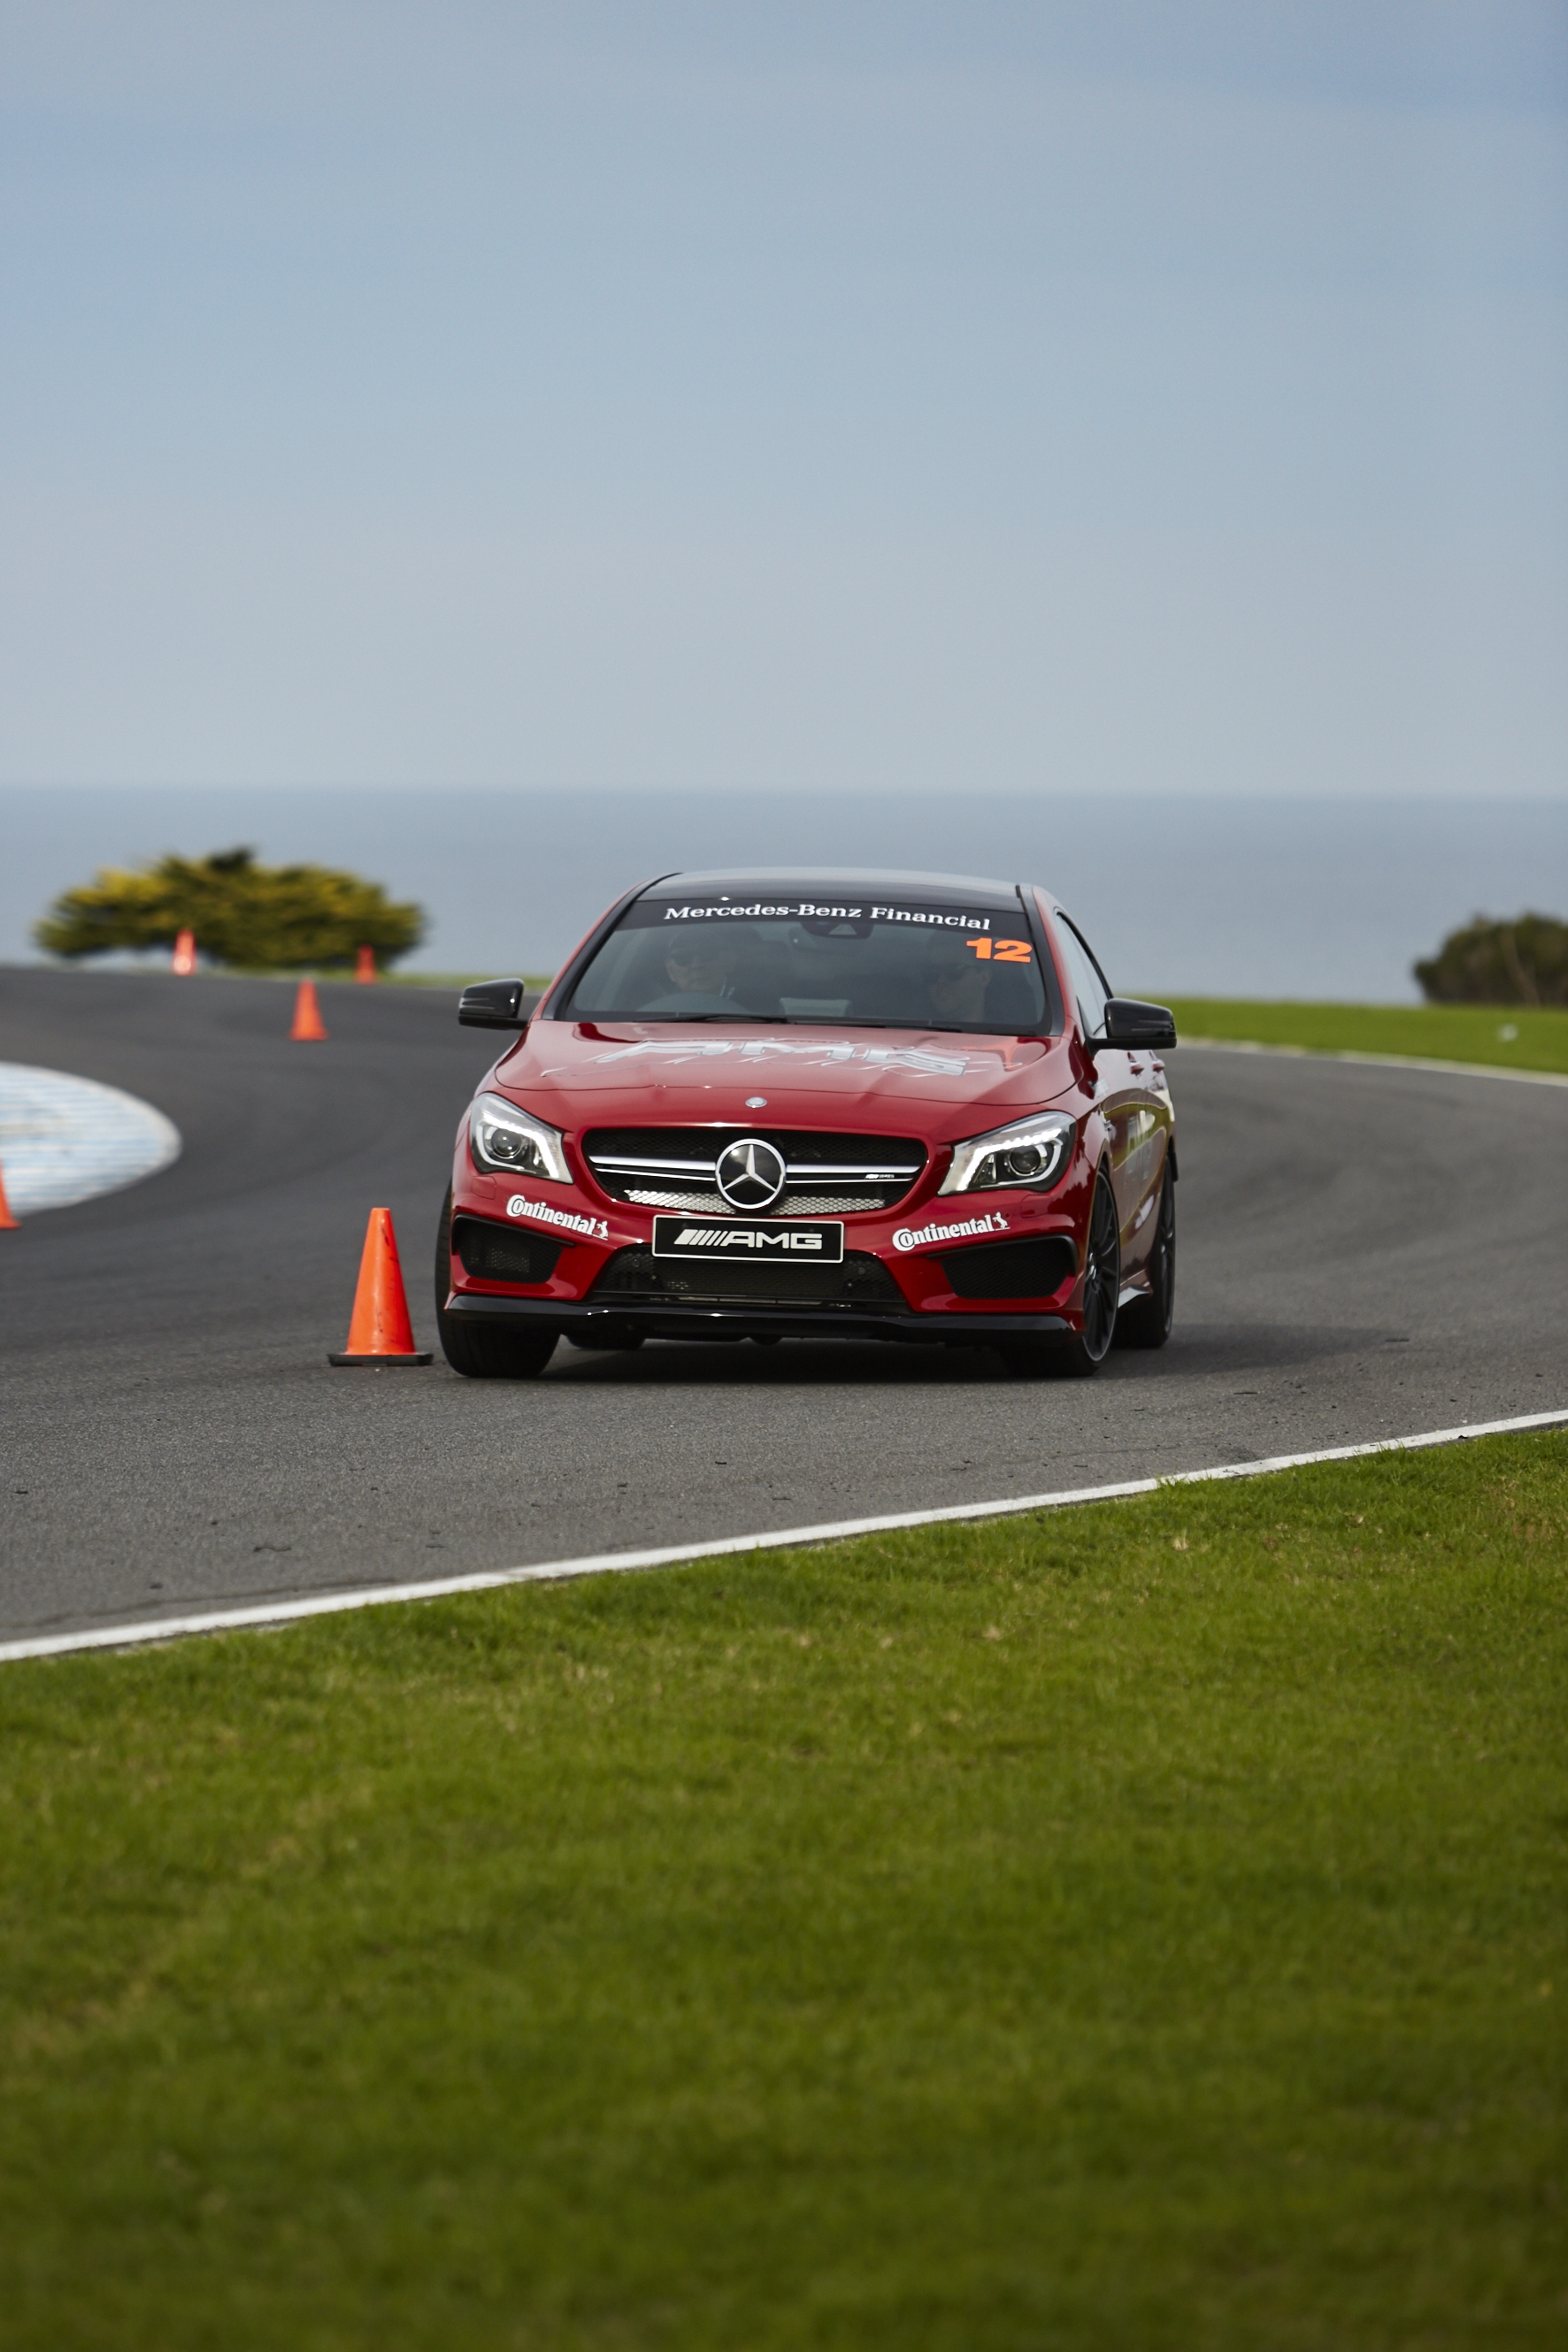 AMG-PhillipIsland-22-5-267.jpg